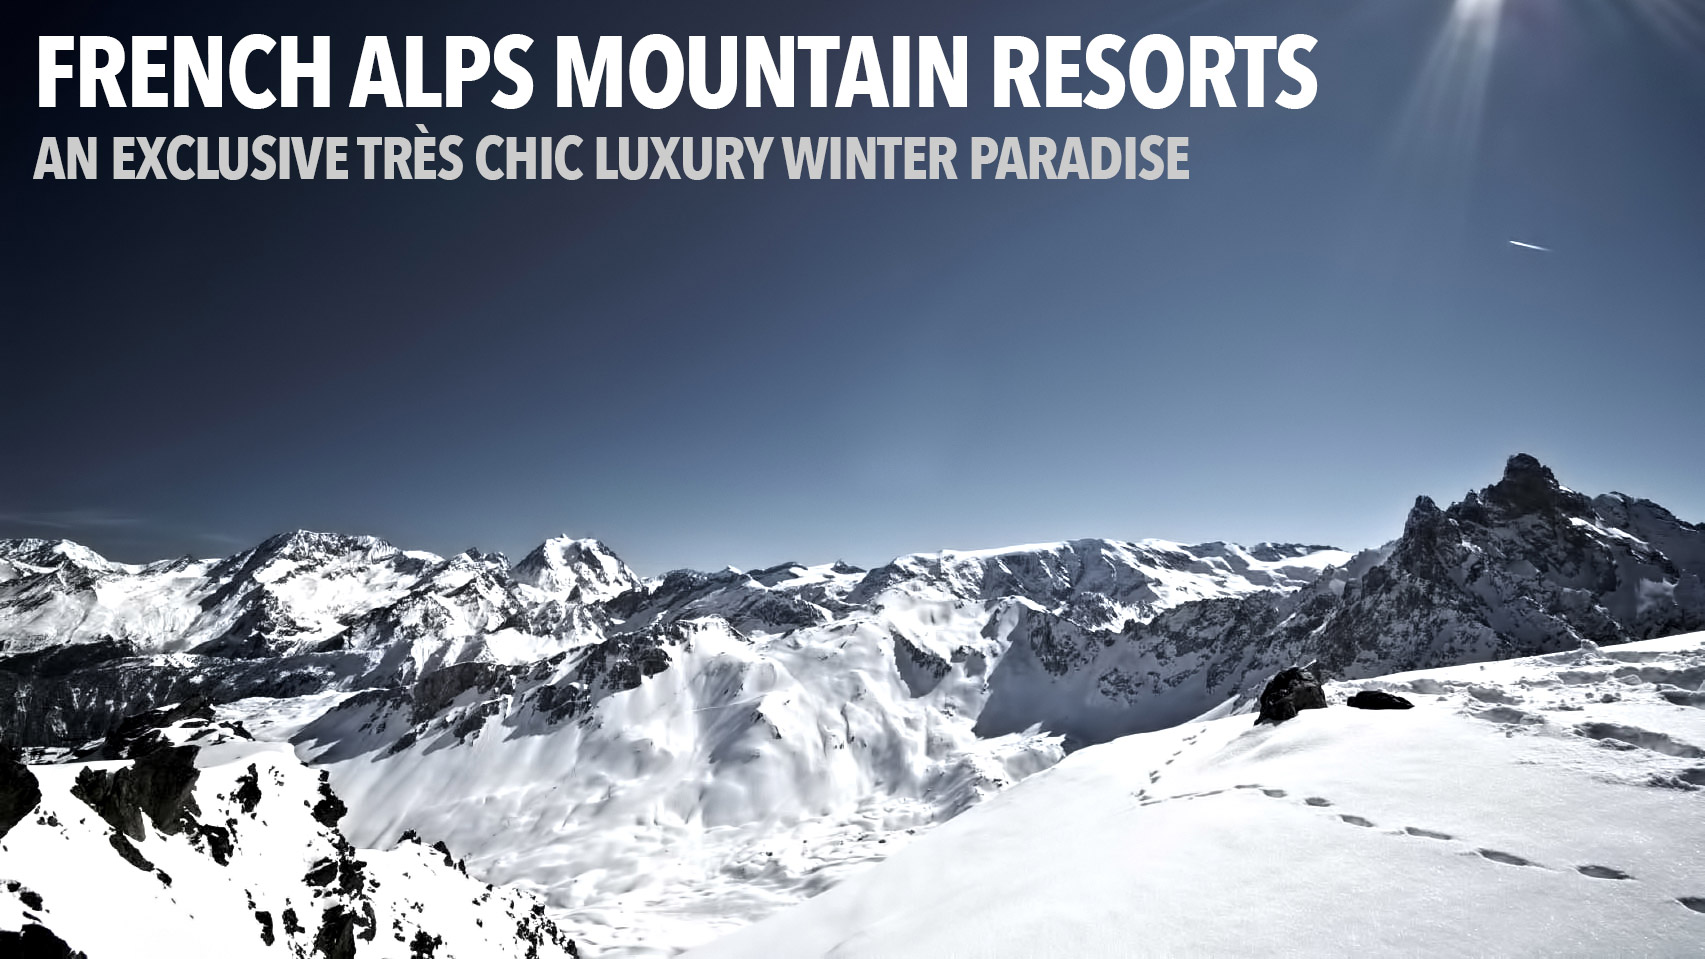 French Alps Mountain Resorts – An Exclusive Très Chic Luxury Winter Paradise